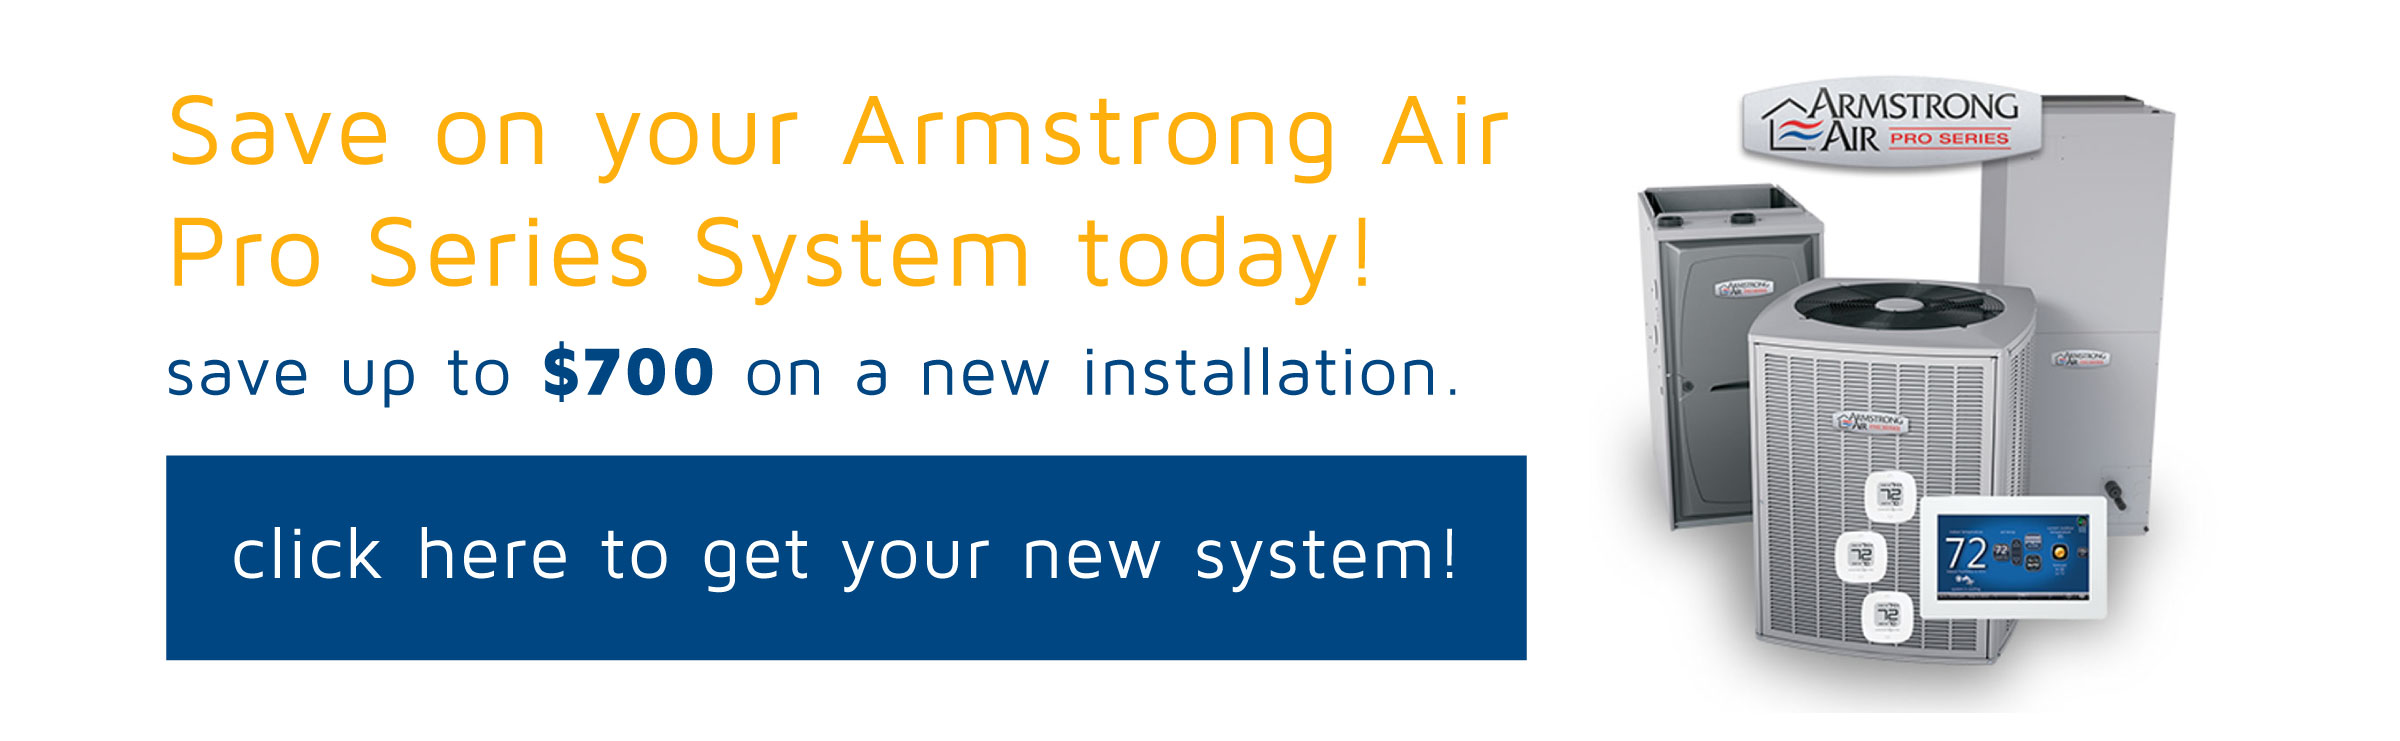 Save up to $700 on a new Armstrong Air Pro series system! Call Chase Heating and Cooling today to learn more!